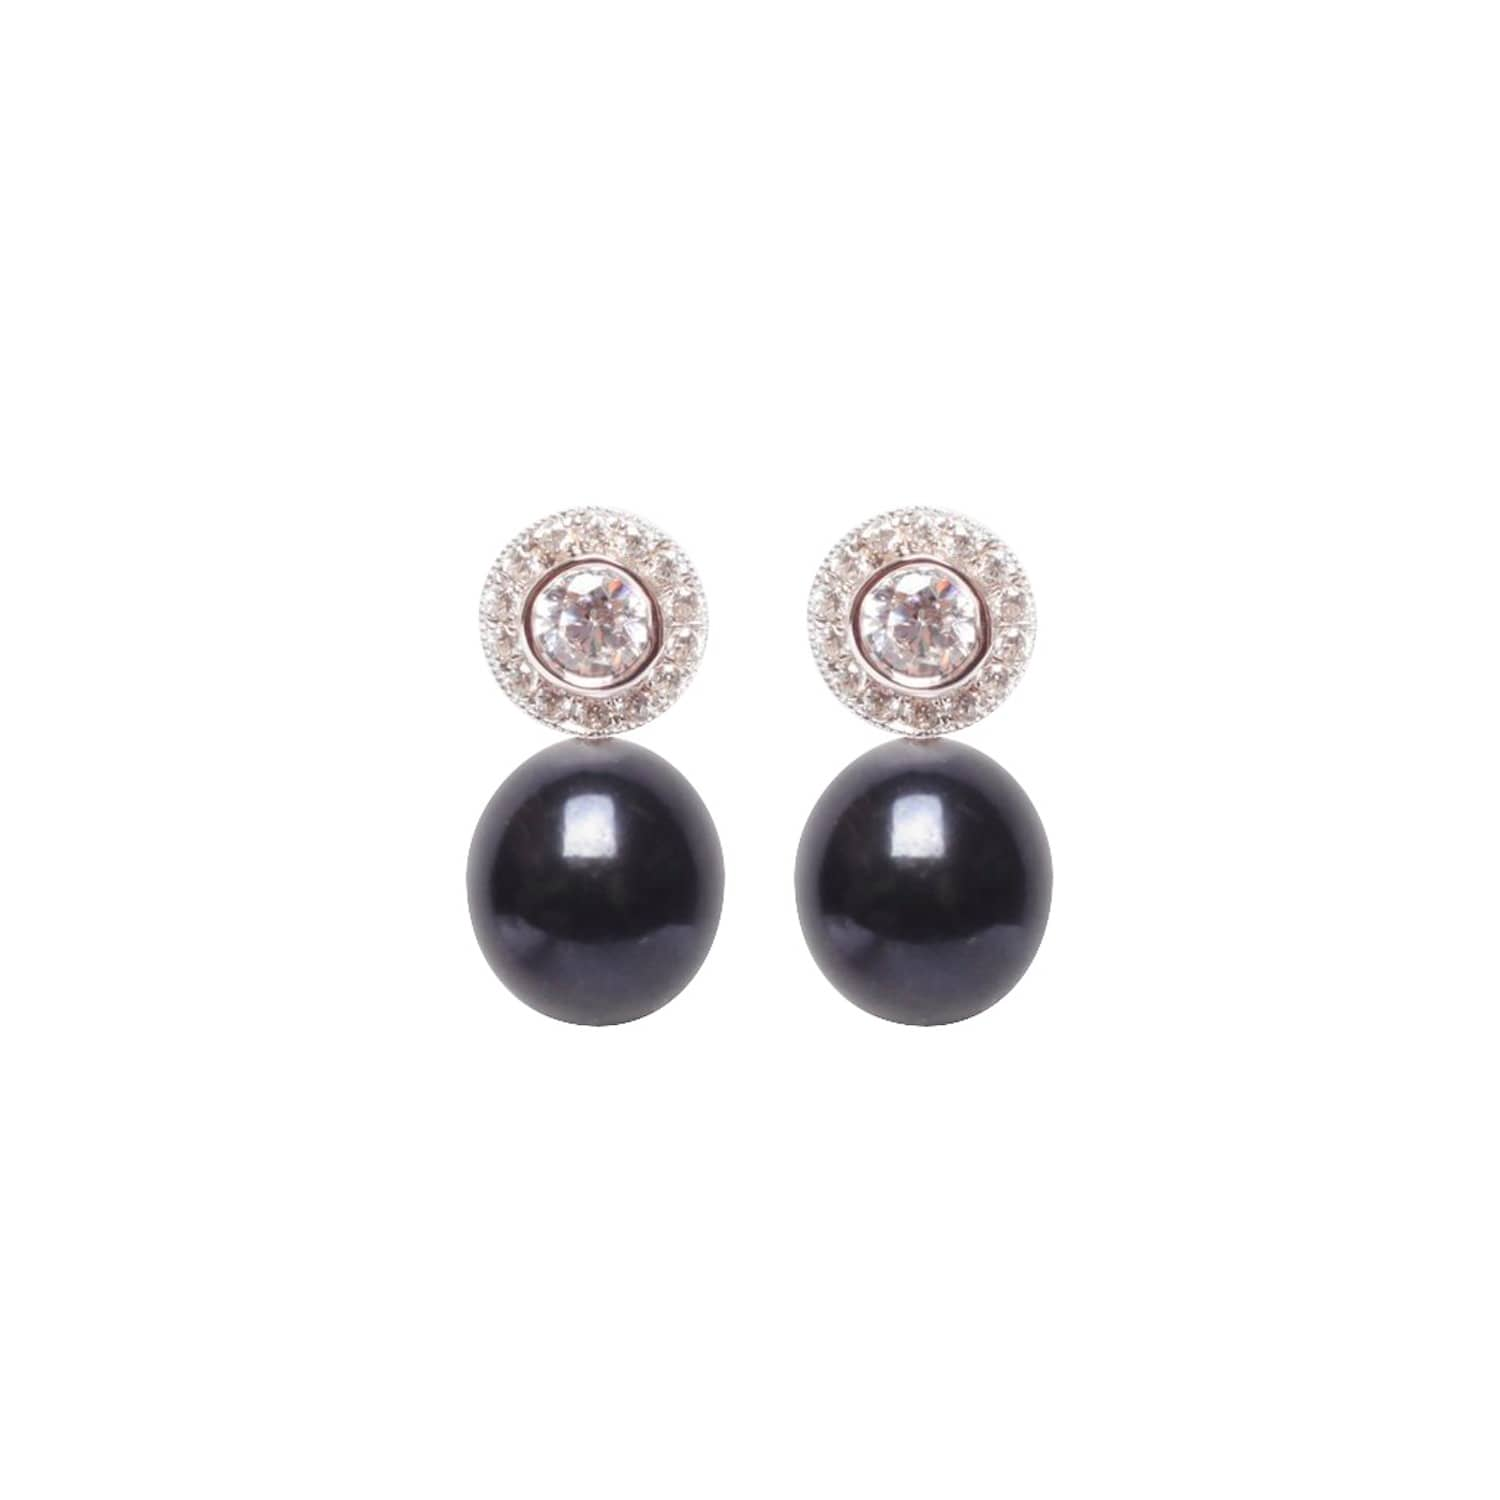 from pearls black solid white with valentine earrings s women cultured present day in tahitian for jewelry elegant item ainuoshi natural eaarings fine stud pearl gold